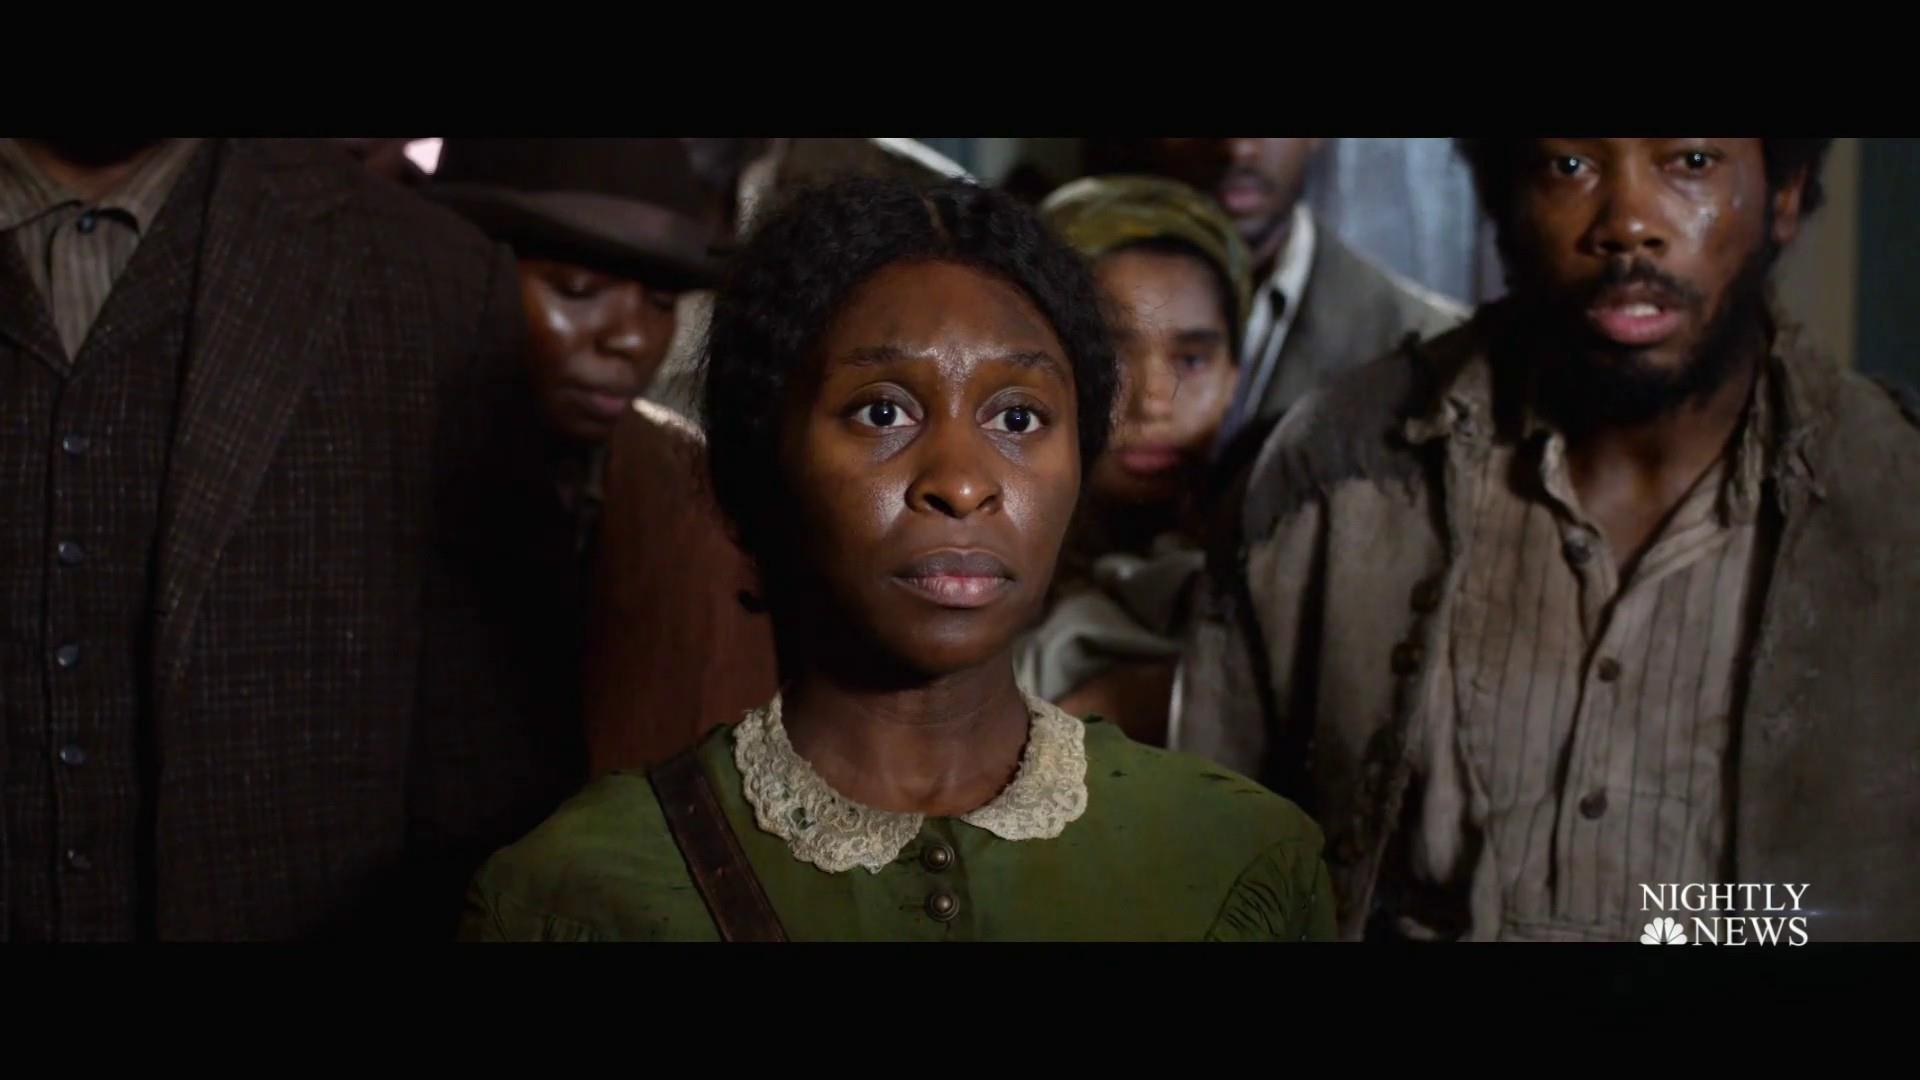 AMC to fire 3 workers for alleged racial profiling of black women at 'Harriet' screening